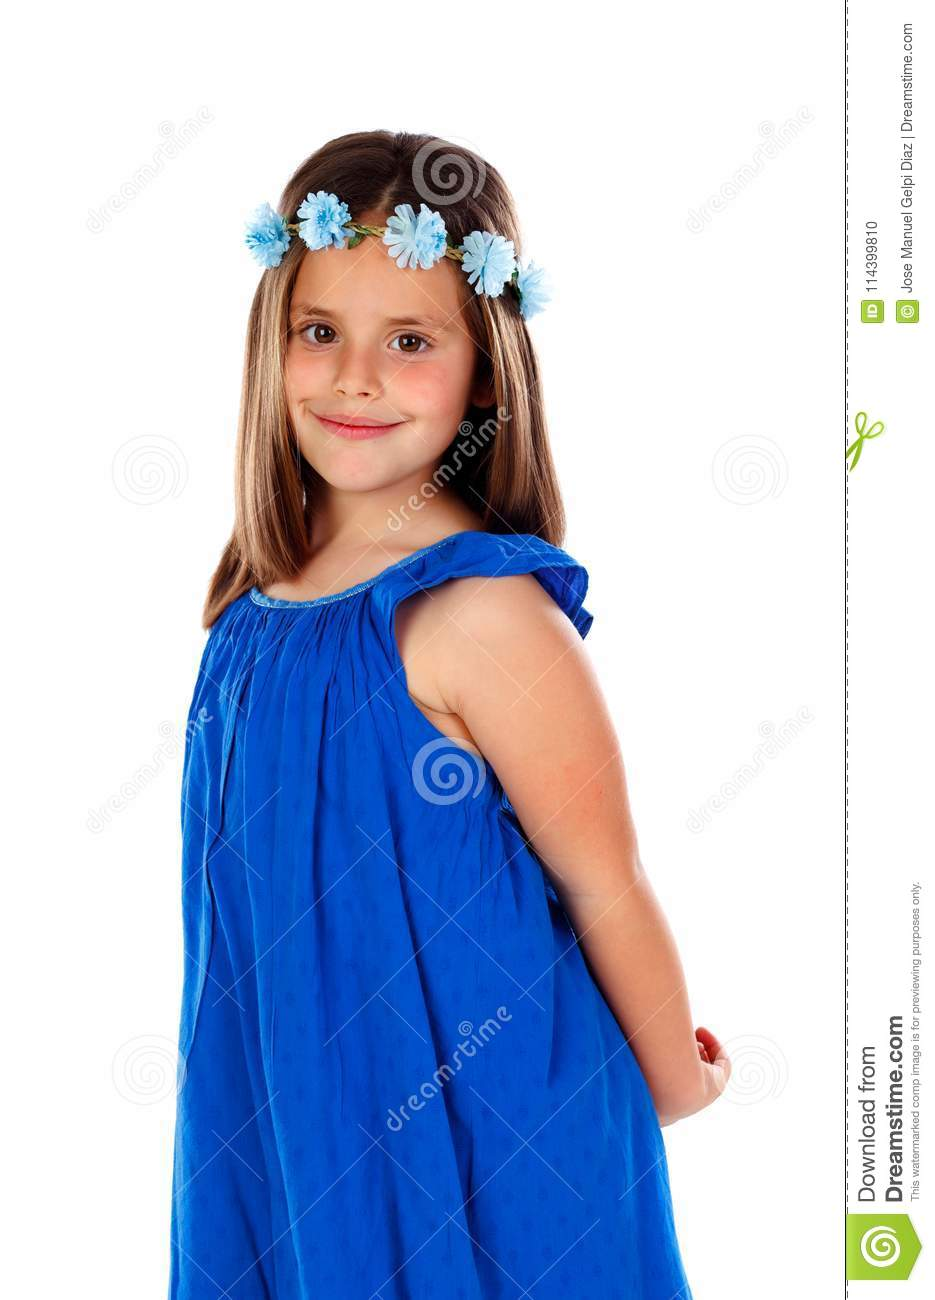 Beautiful Small Girl With Blue Dress And A Flowers Wreath On H